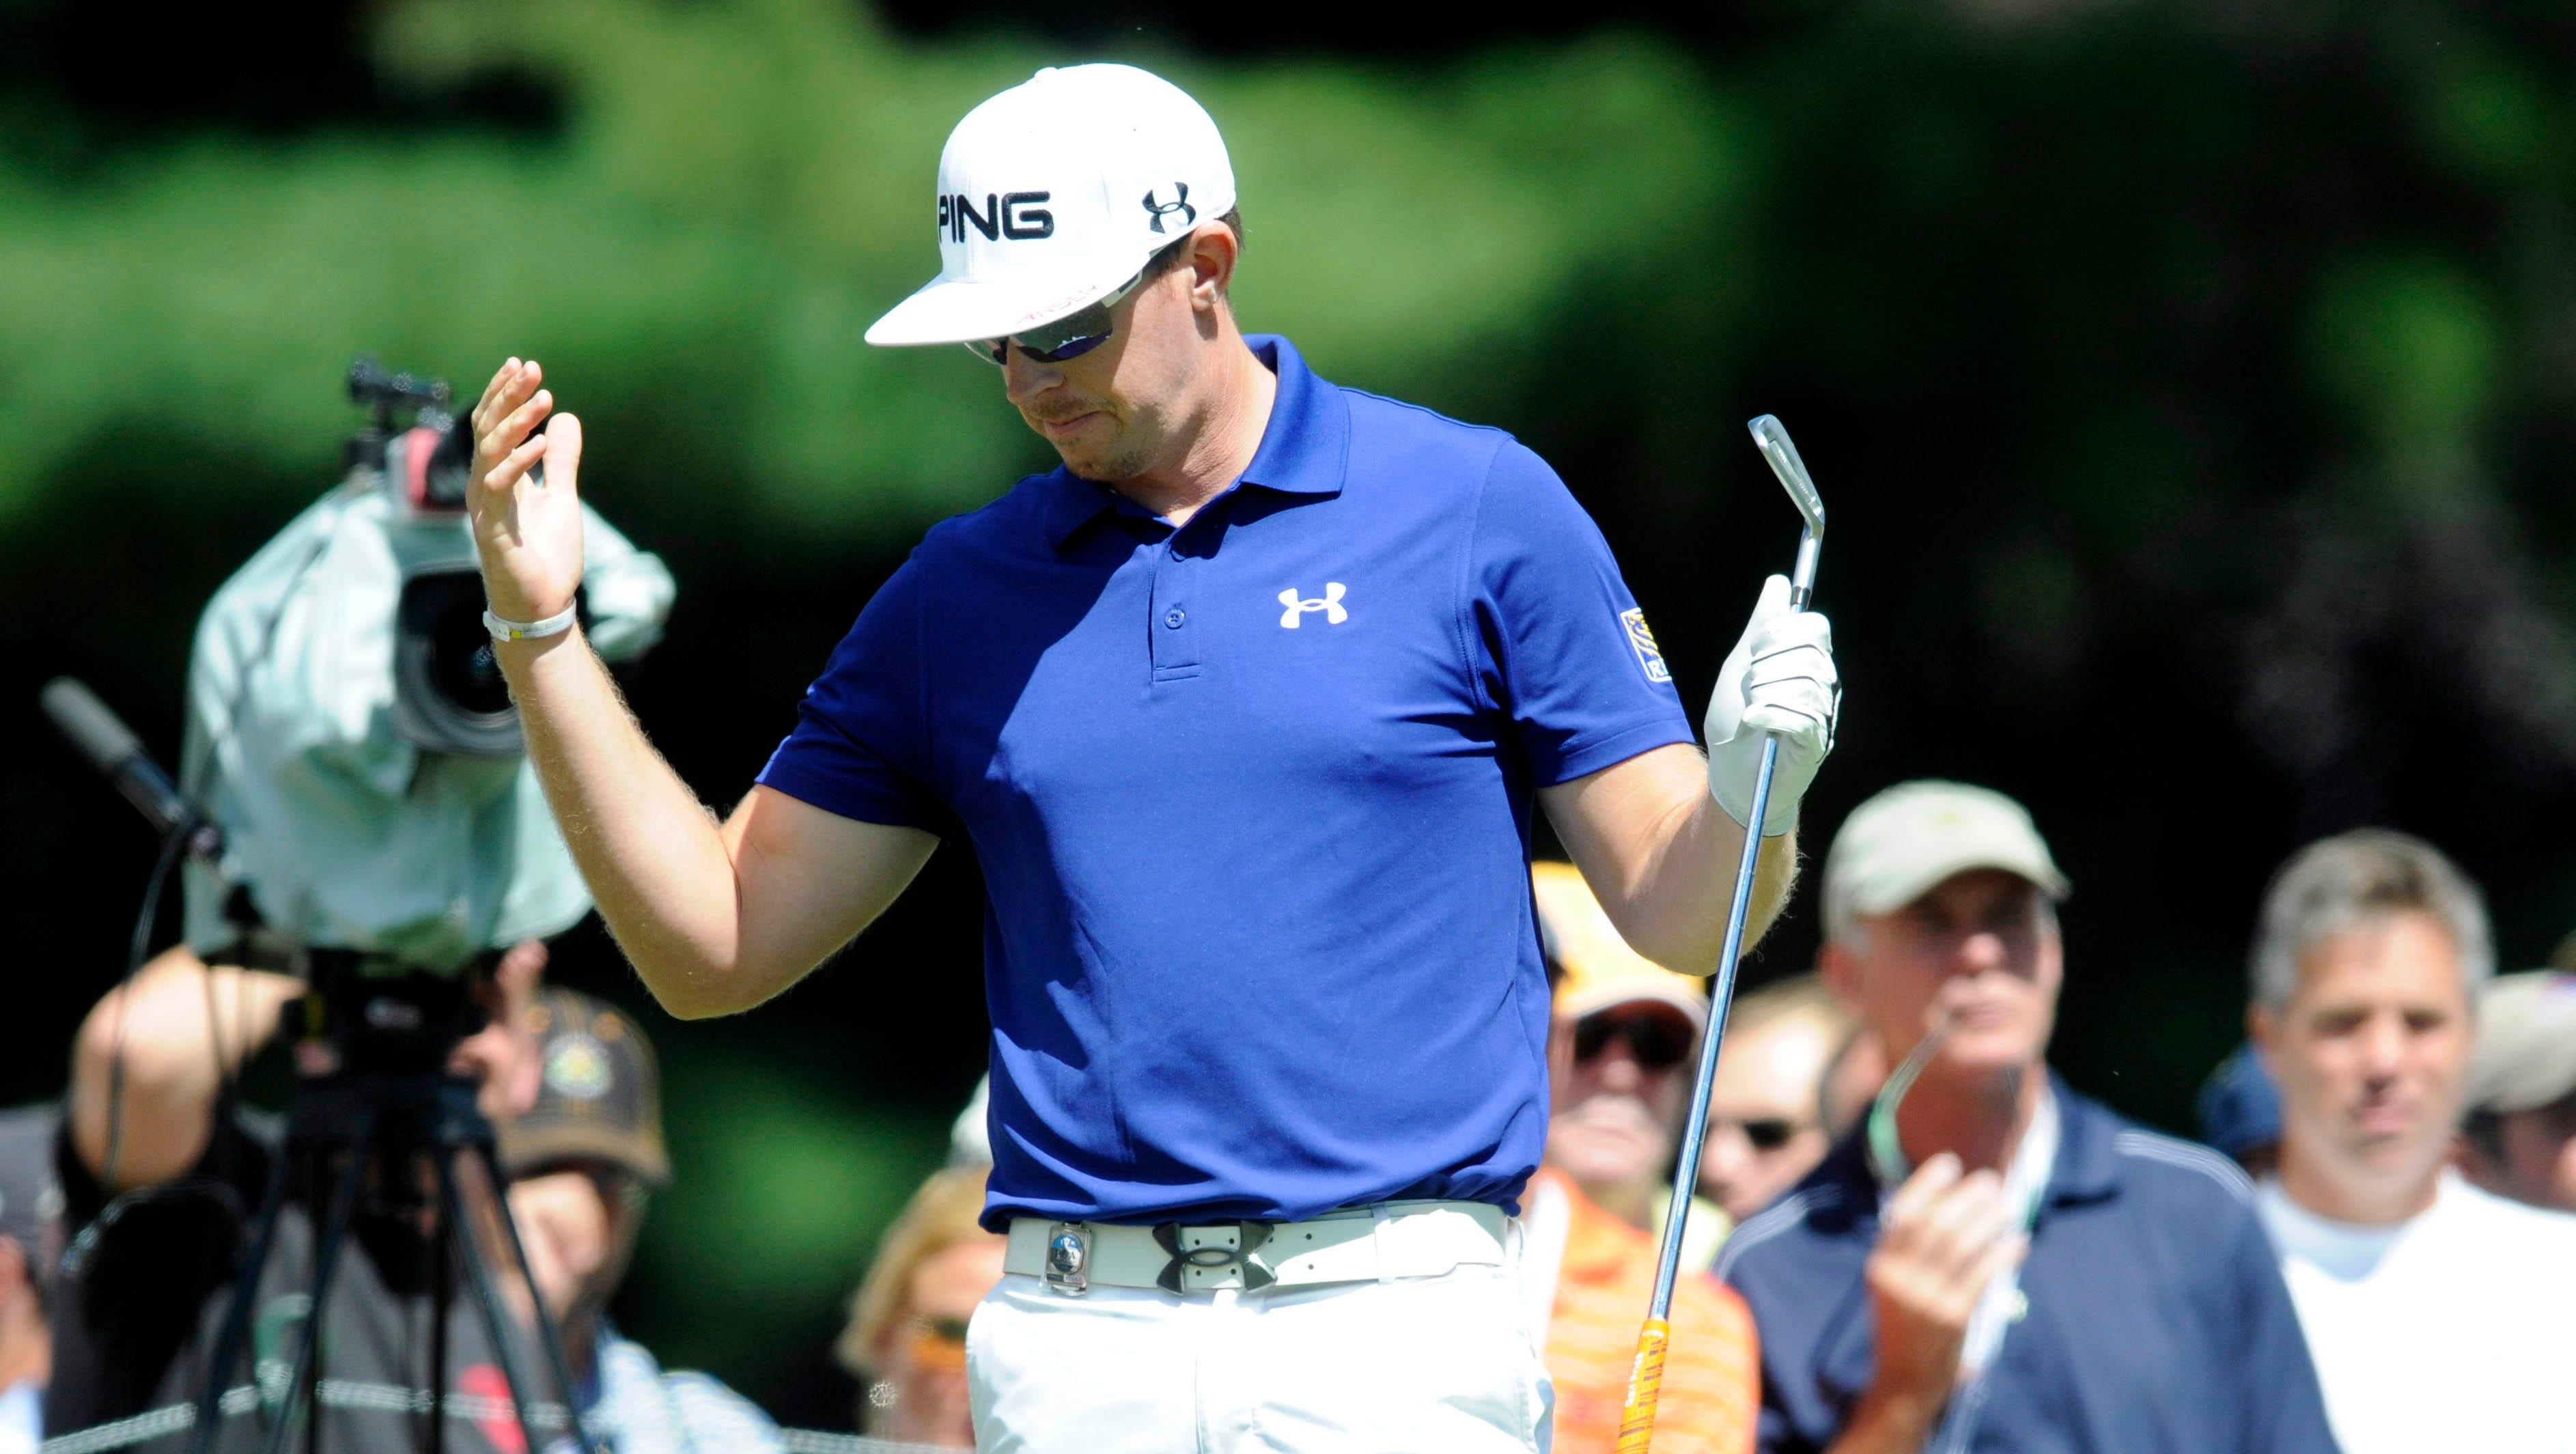 Hunter Mahan is unhappy with his tee shot on No. 6.